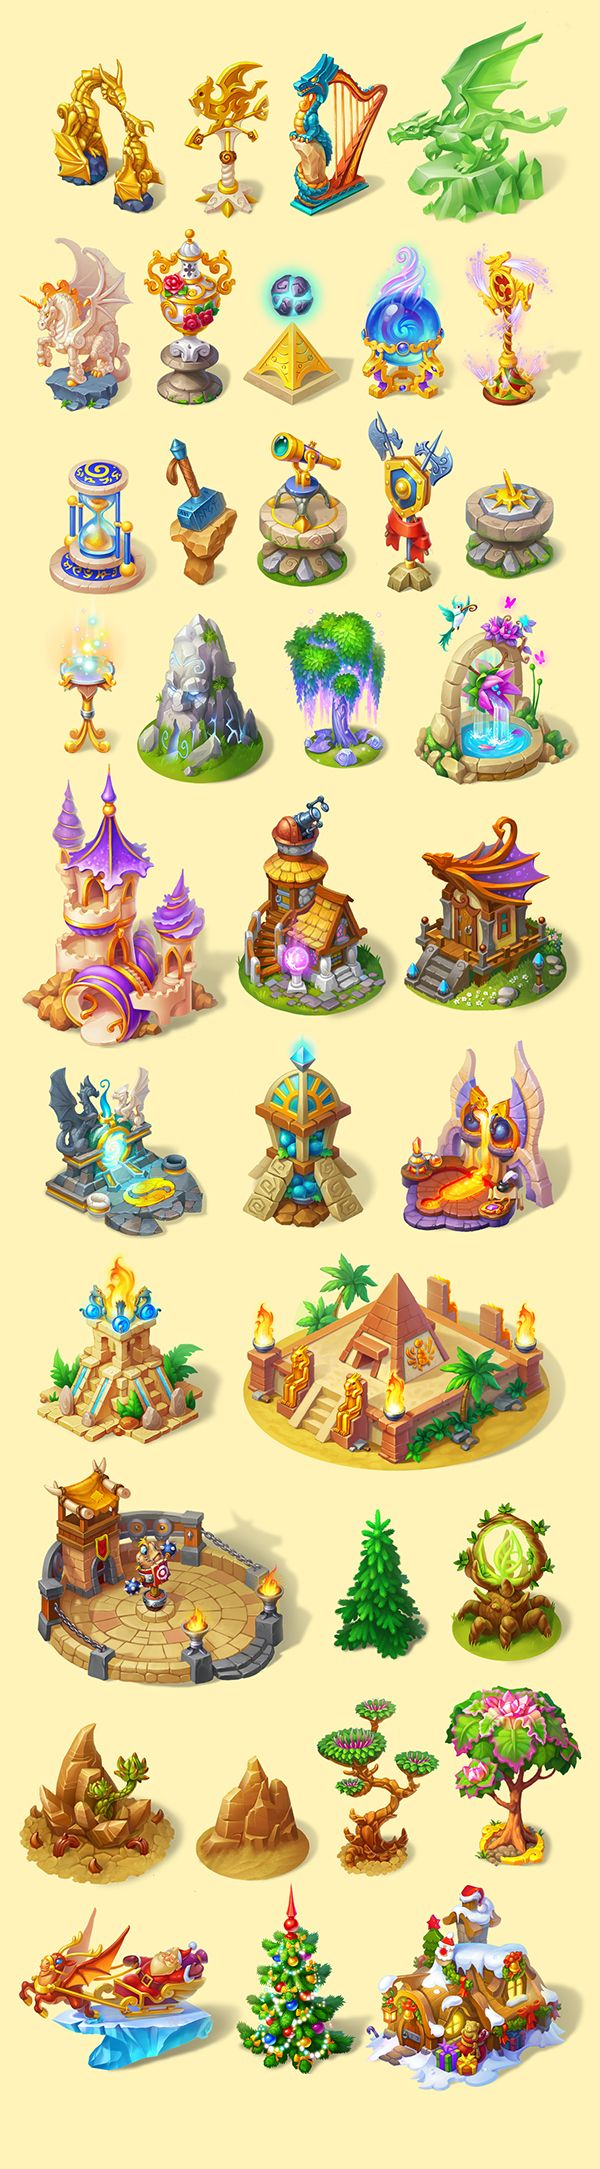 Raise dragons and watch them grow from little babies into huge, beautiful creatures. Breed unique dragon species using the ones you already have. Build and develop your dragon sanctuary on the Flying Islands.